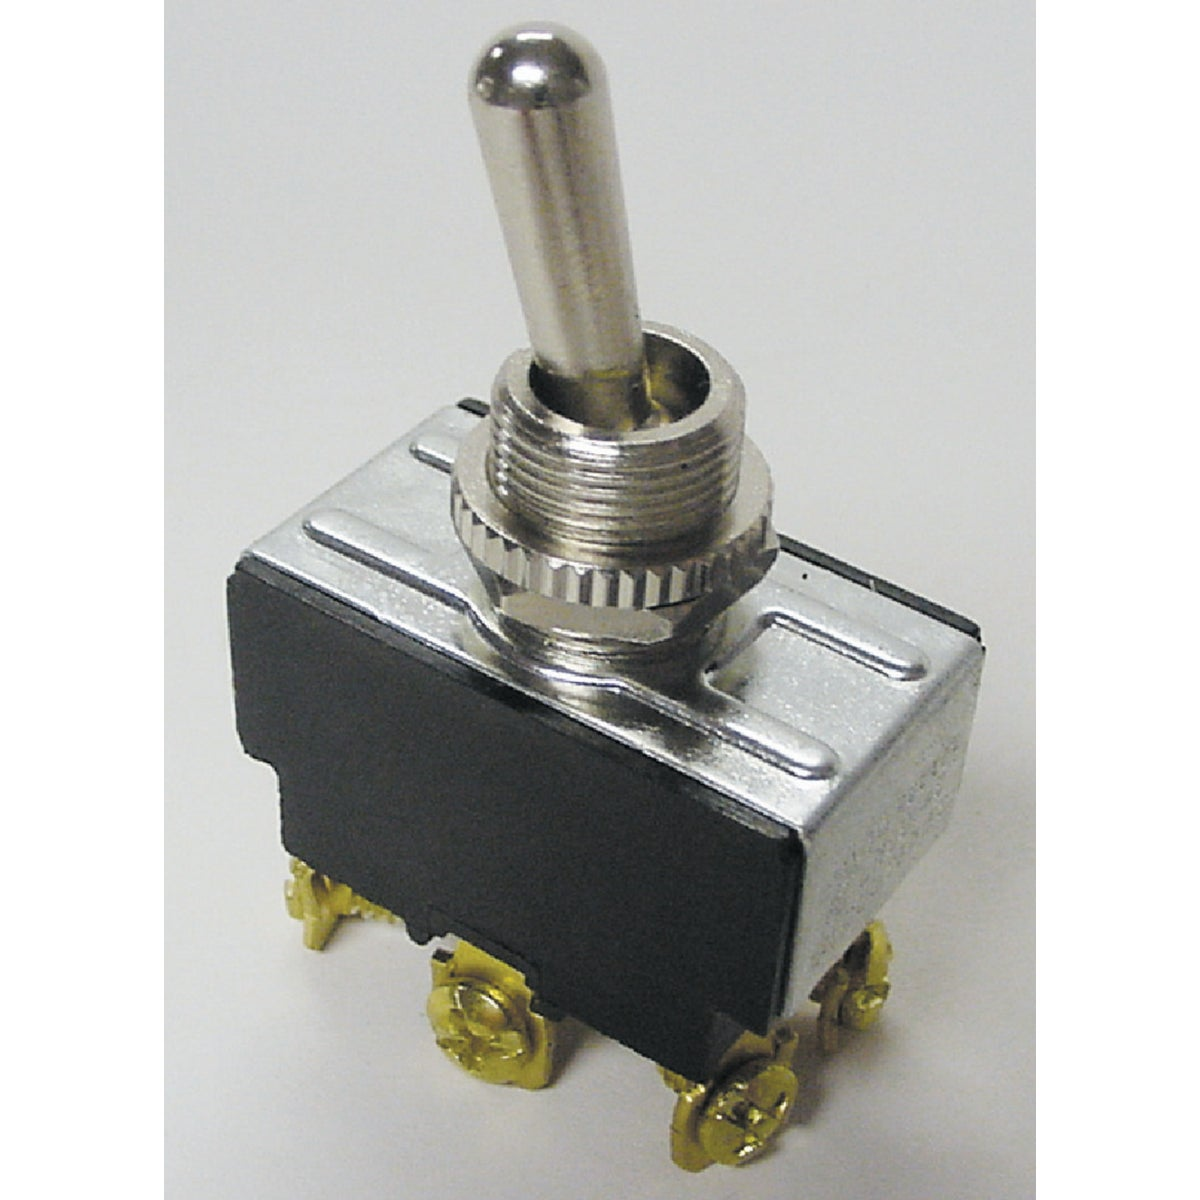 HEAVY DUTY TOGGLE SWITCH - GSW-15 by G B Electrical Inc